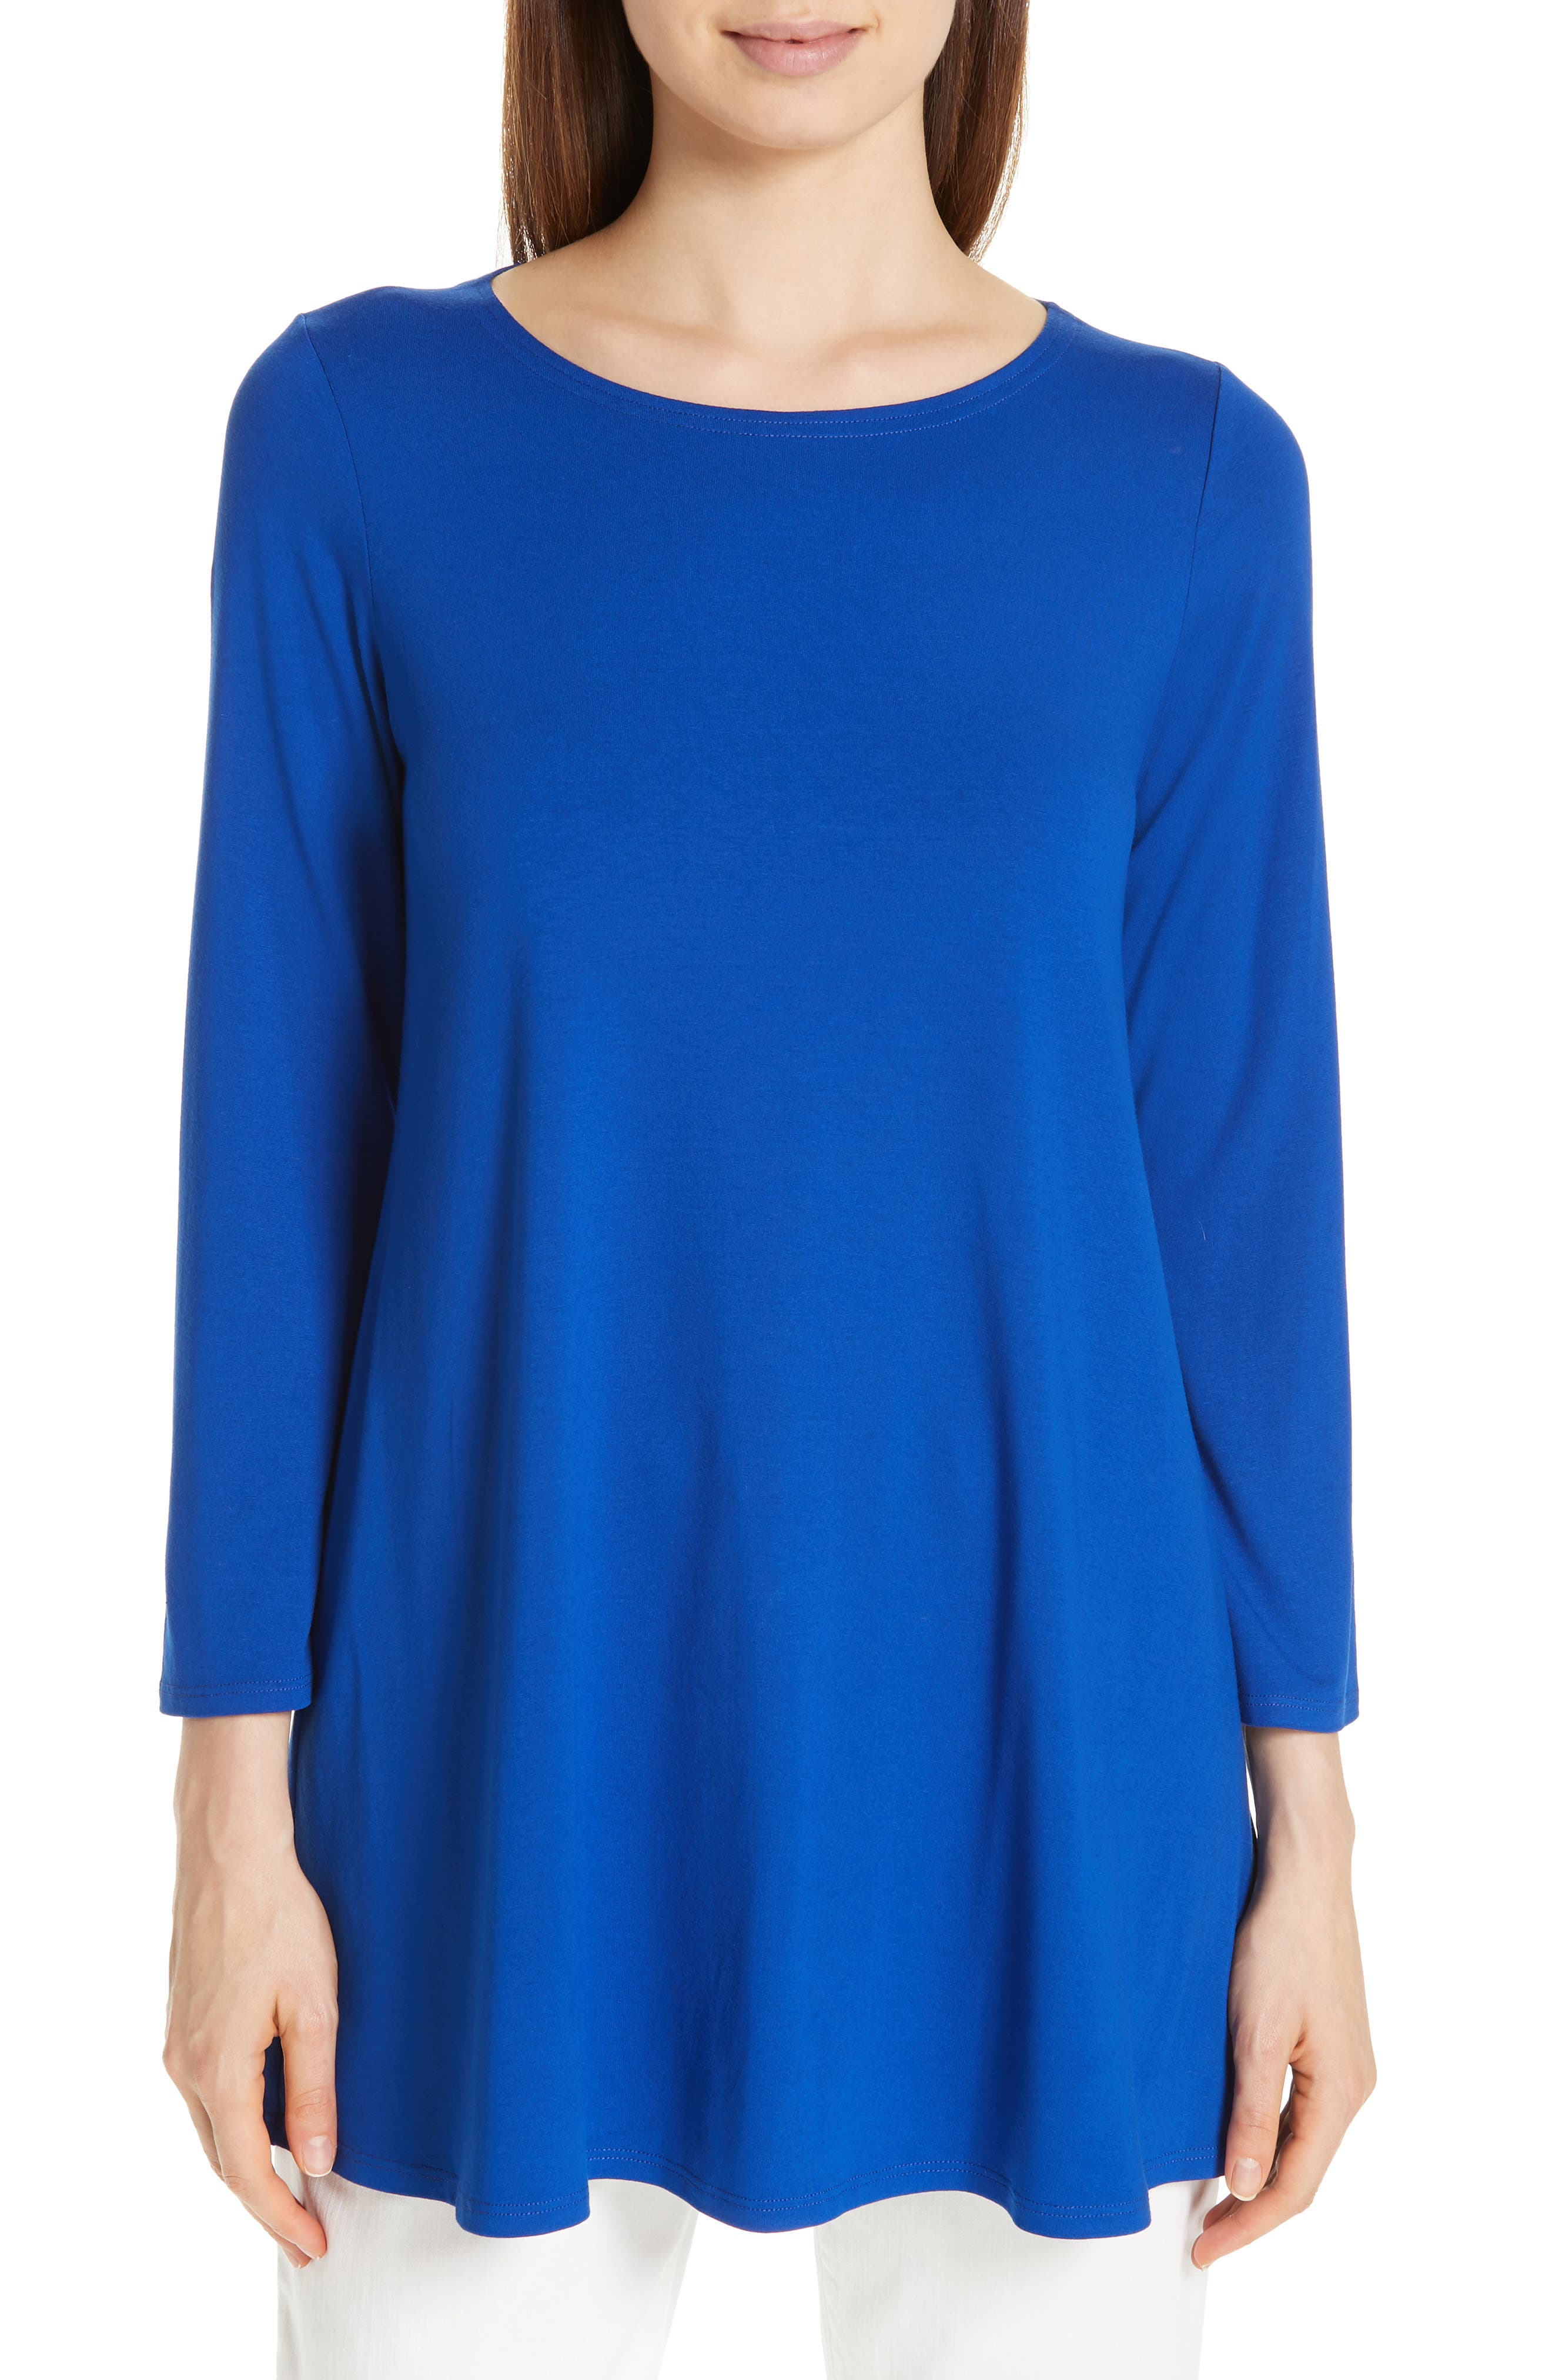 Wide-Sleeve Ballet-Neck Viscose Jersey Tunic, Plus Size in Royal